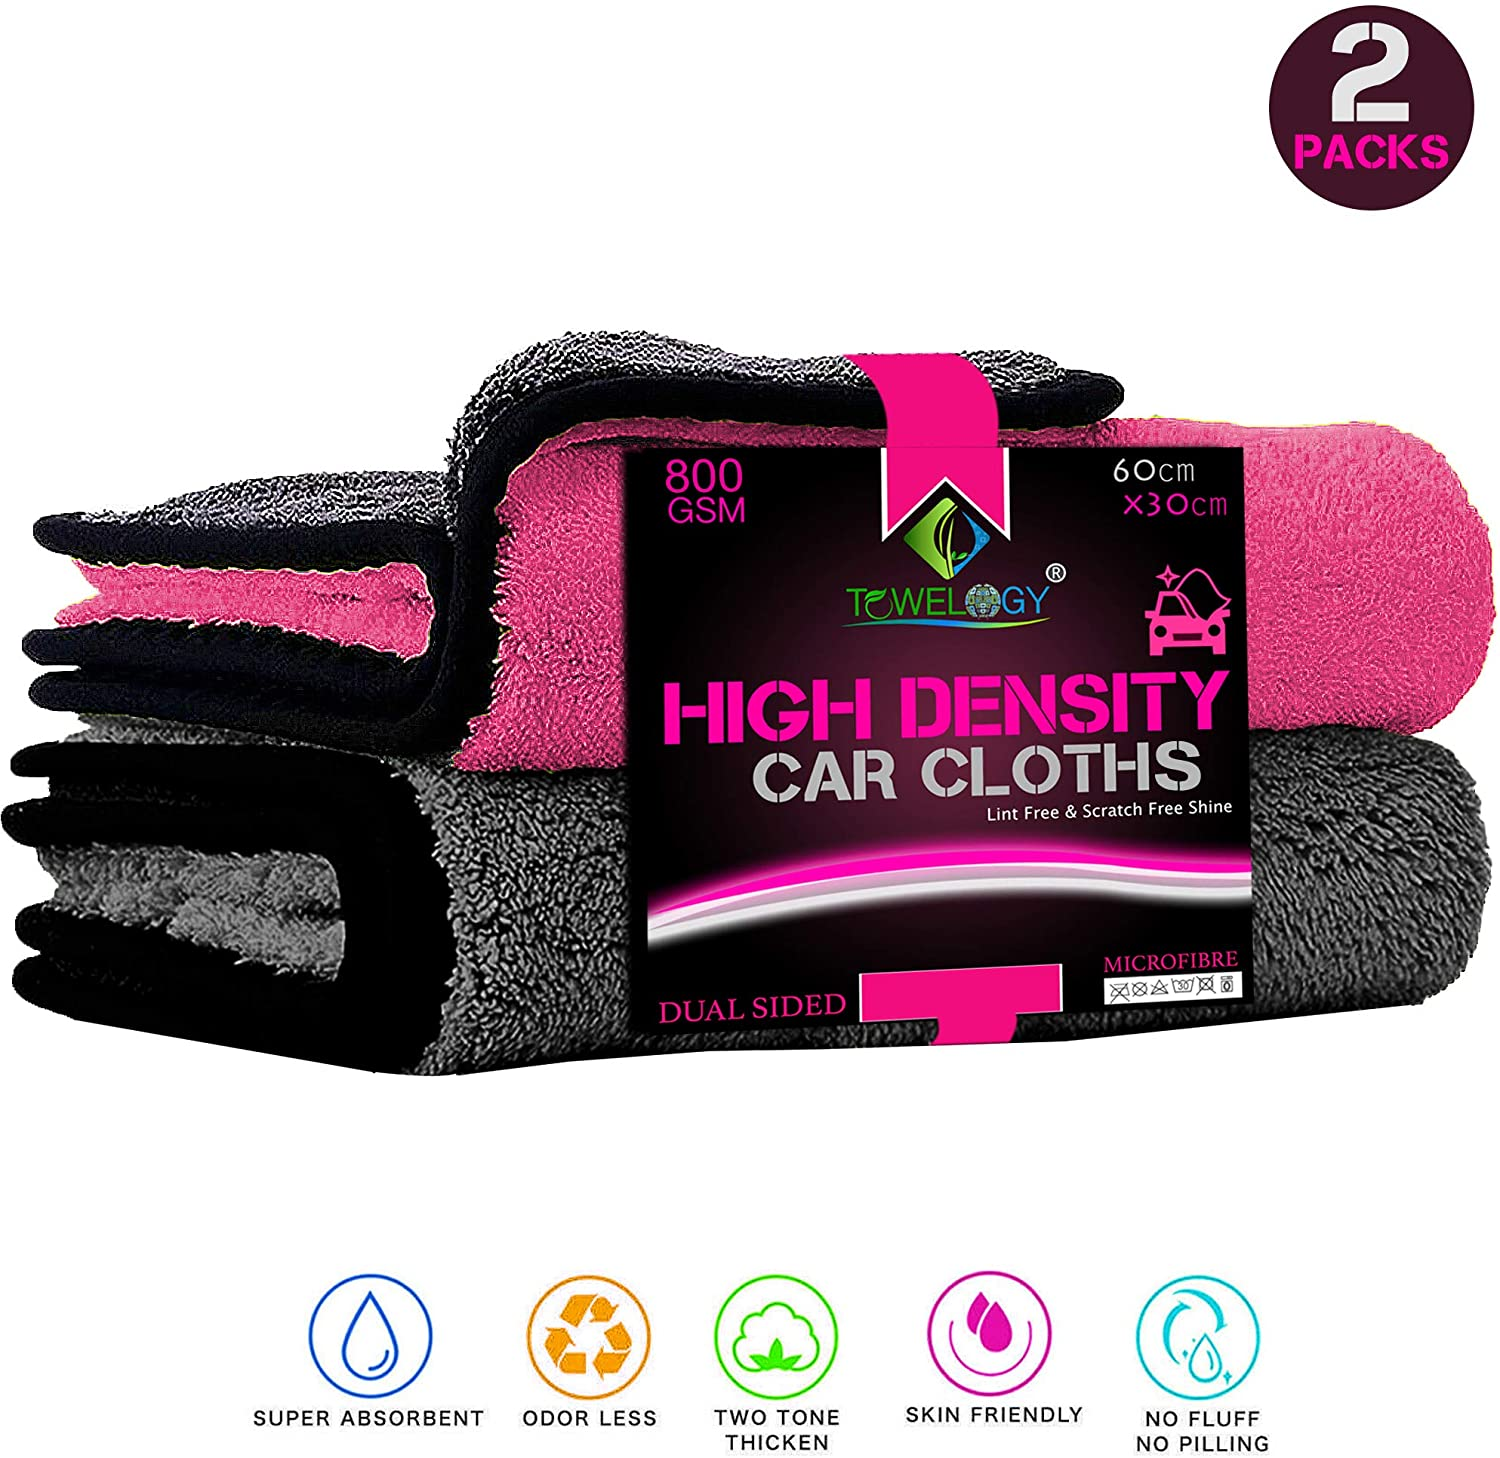 Microfibre Car Drying Cloths Quick Dry High-Density Car Towels Grey Pink - Towelogy